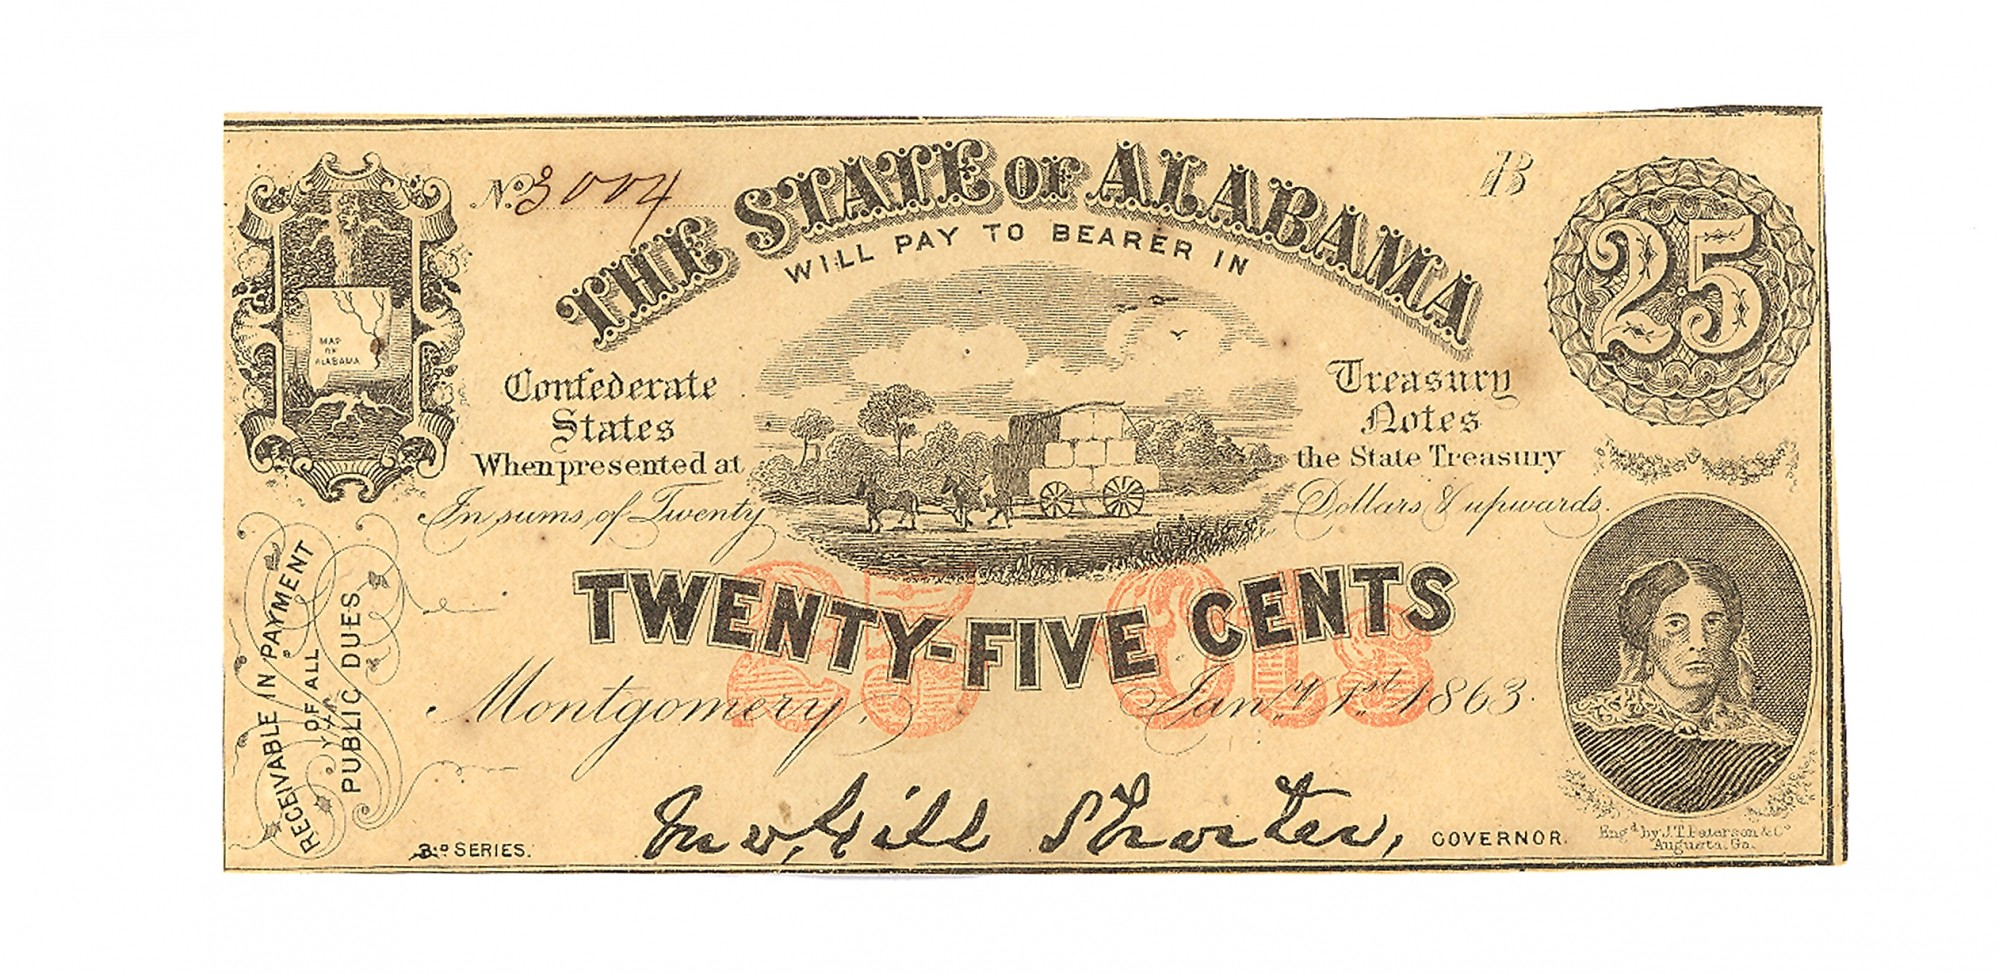 STATE OF ALABAMA $.25 NOTE